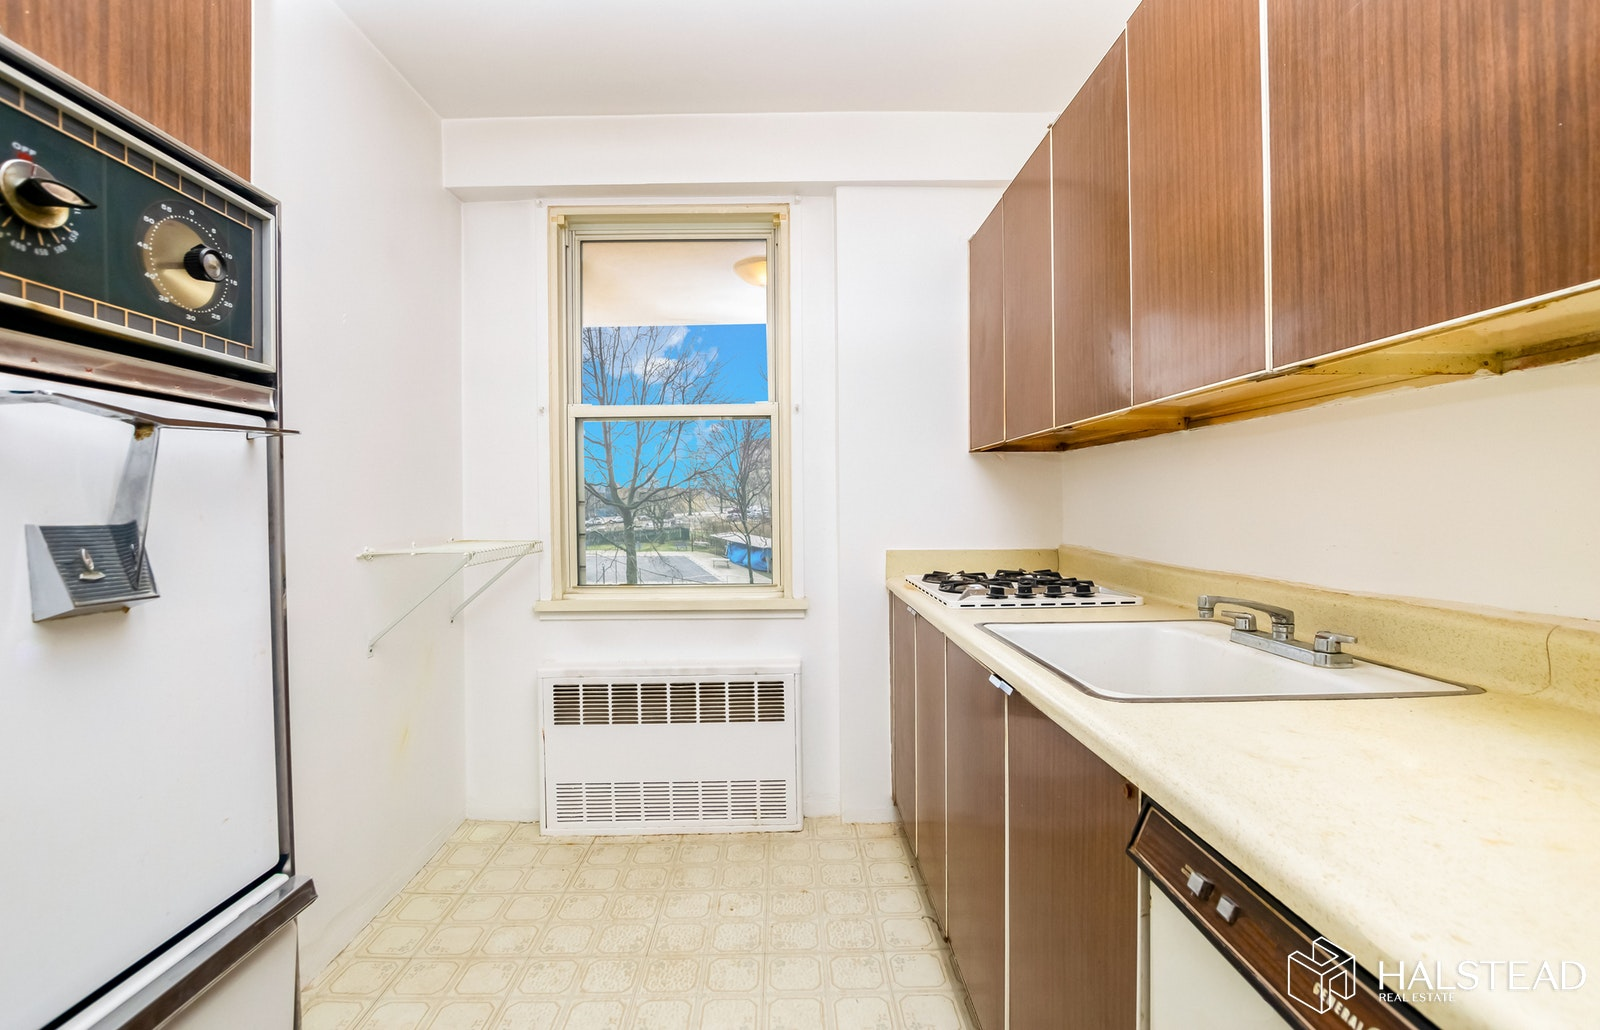 3777 Independence Avenue 4k, Riverdale, New York, 10463, $225,000, Property For Sale, Halstead Real Estate, Photo 5